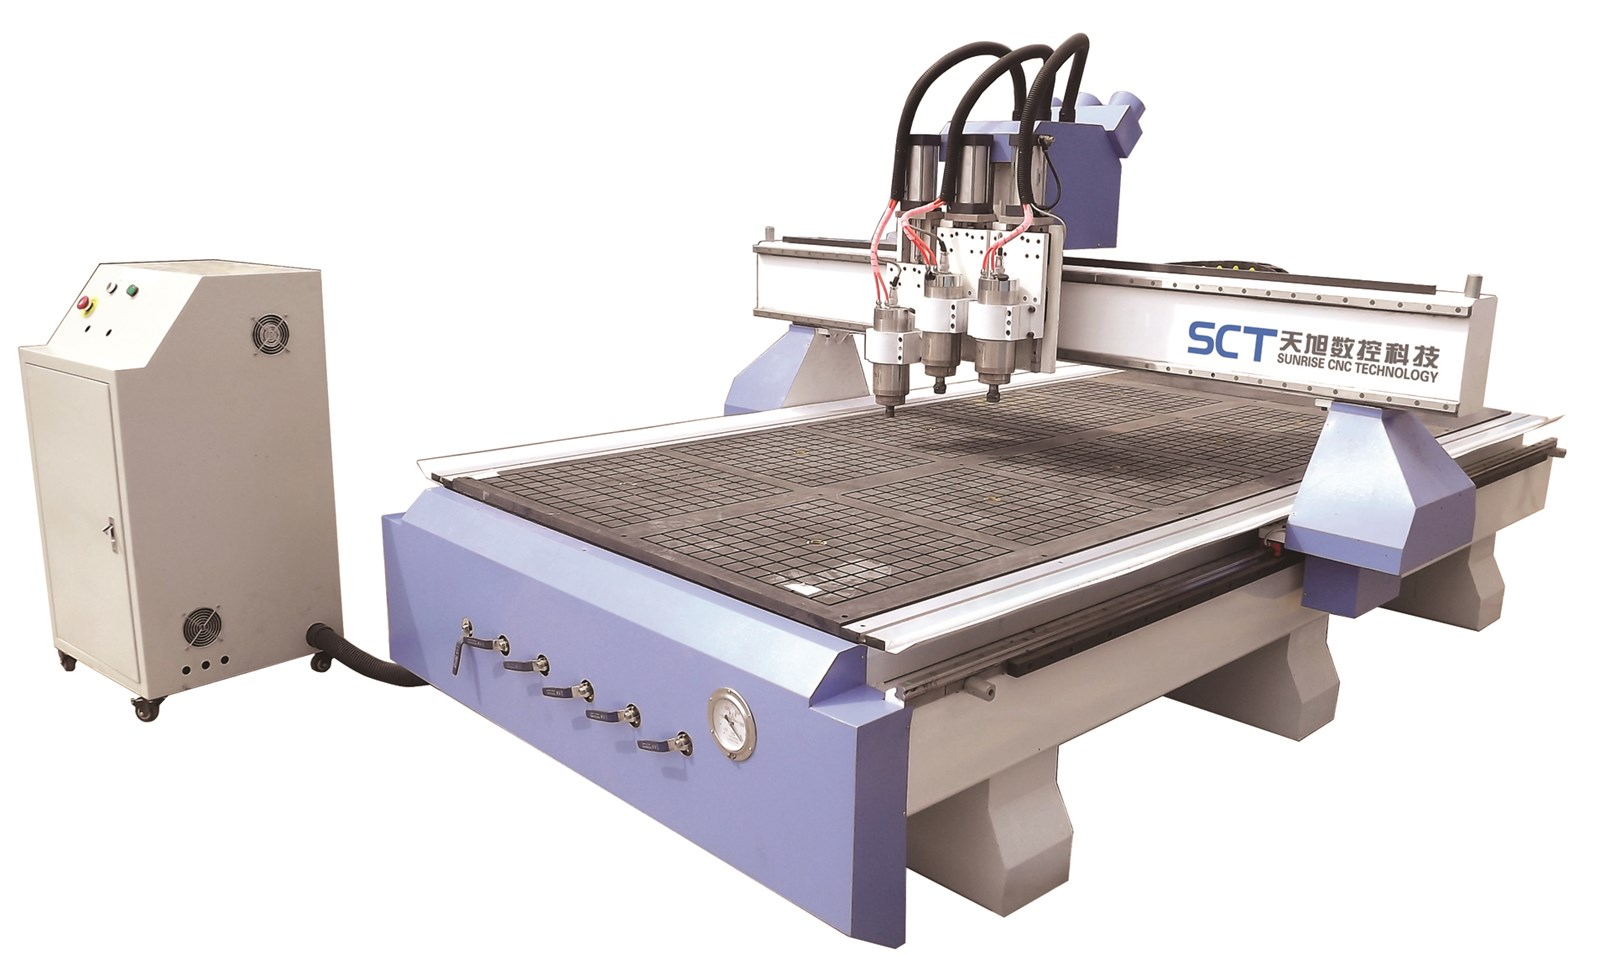 SCT-W1325Q3 Furniture Making Pneumatic Tool Change Spindle Engraving Cutting Wooden Doors ATC Router